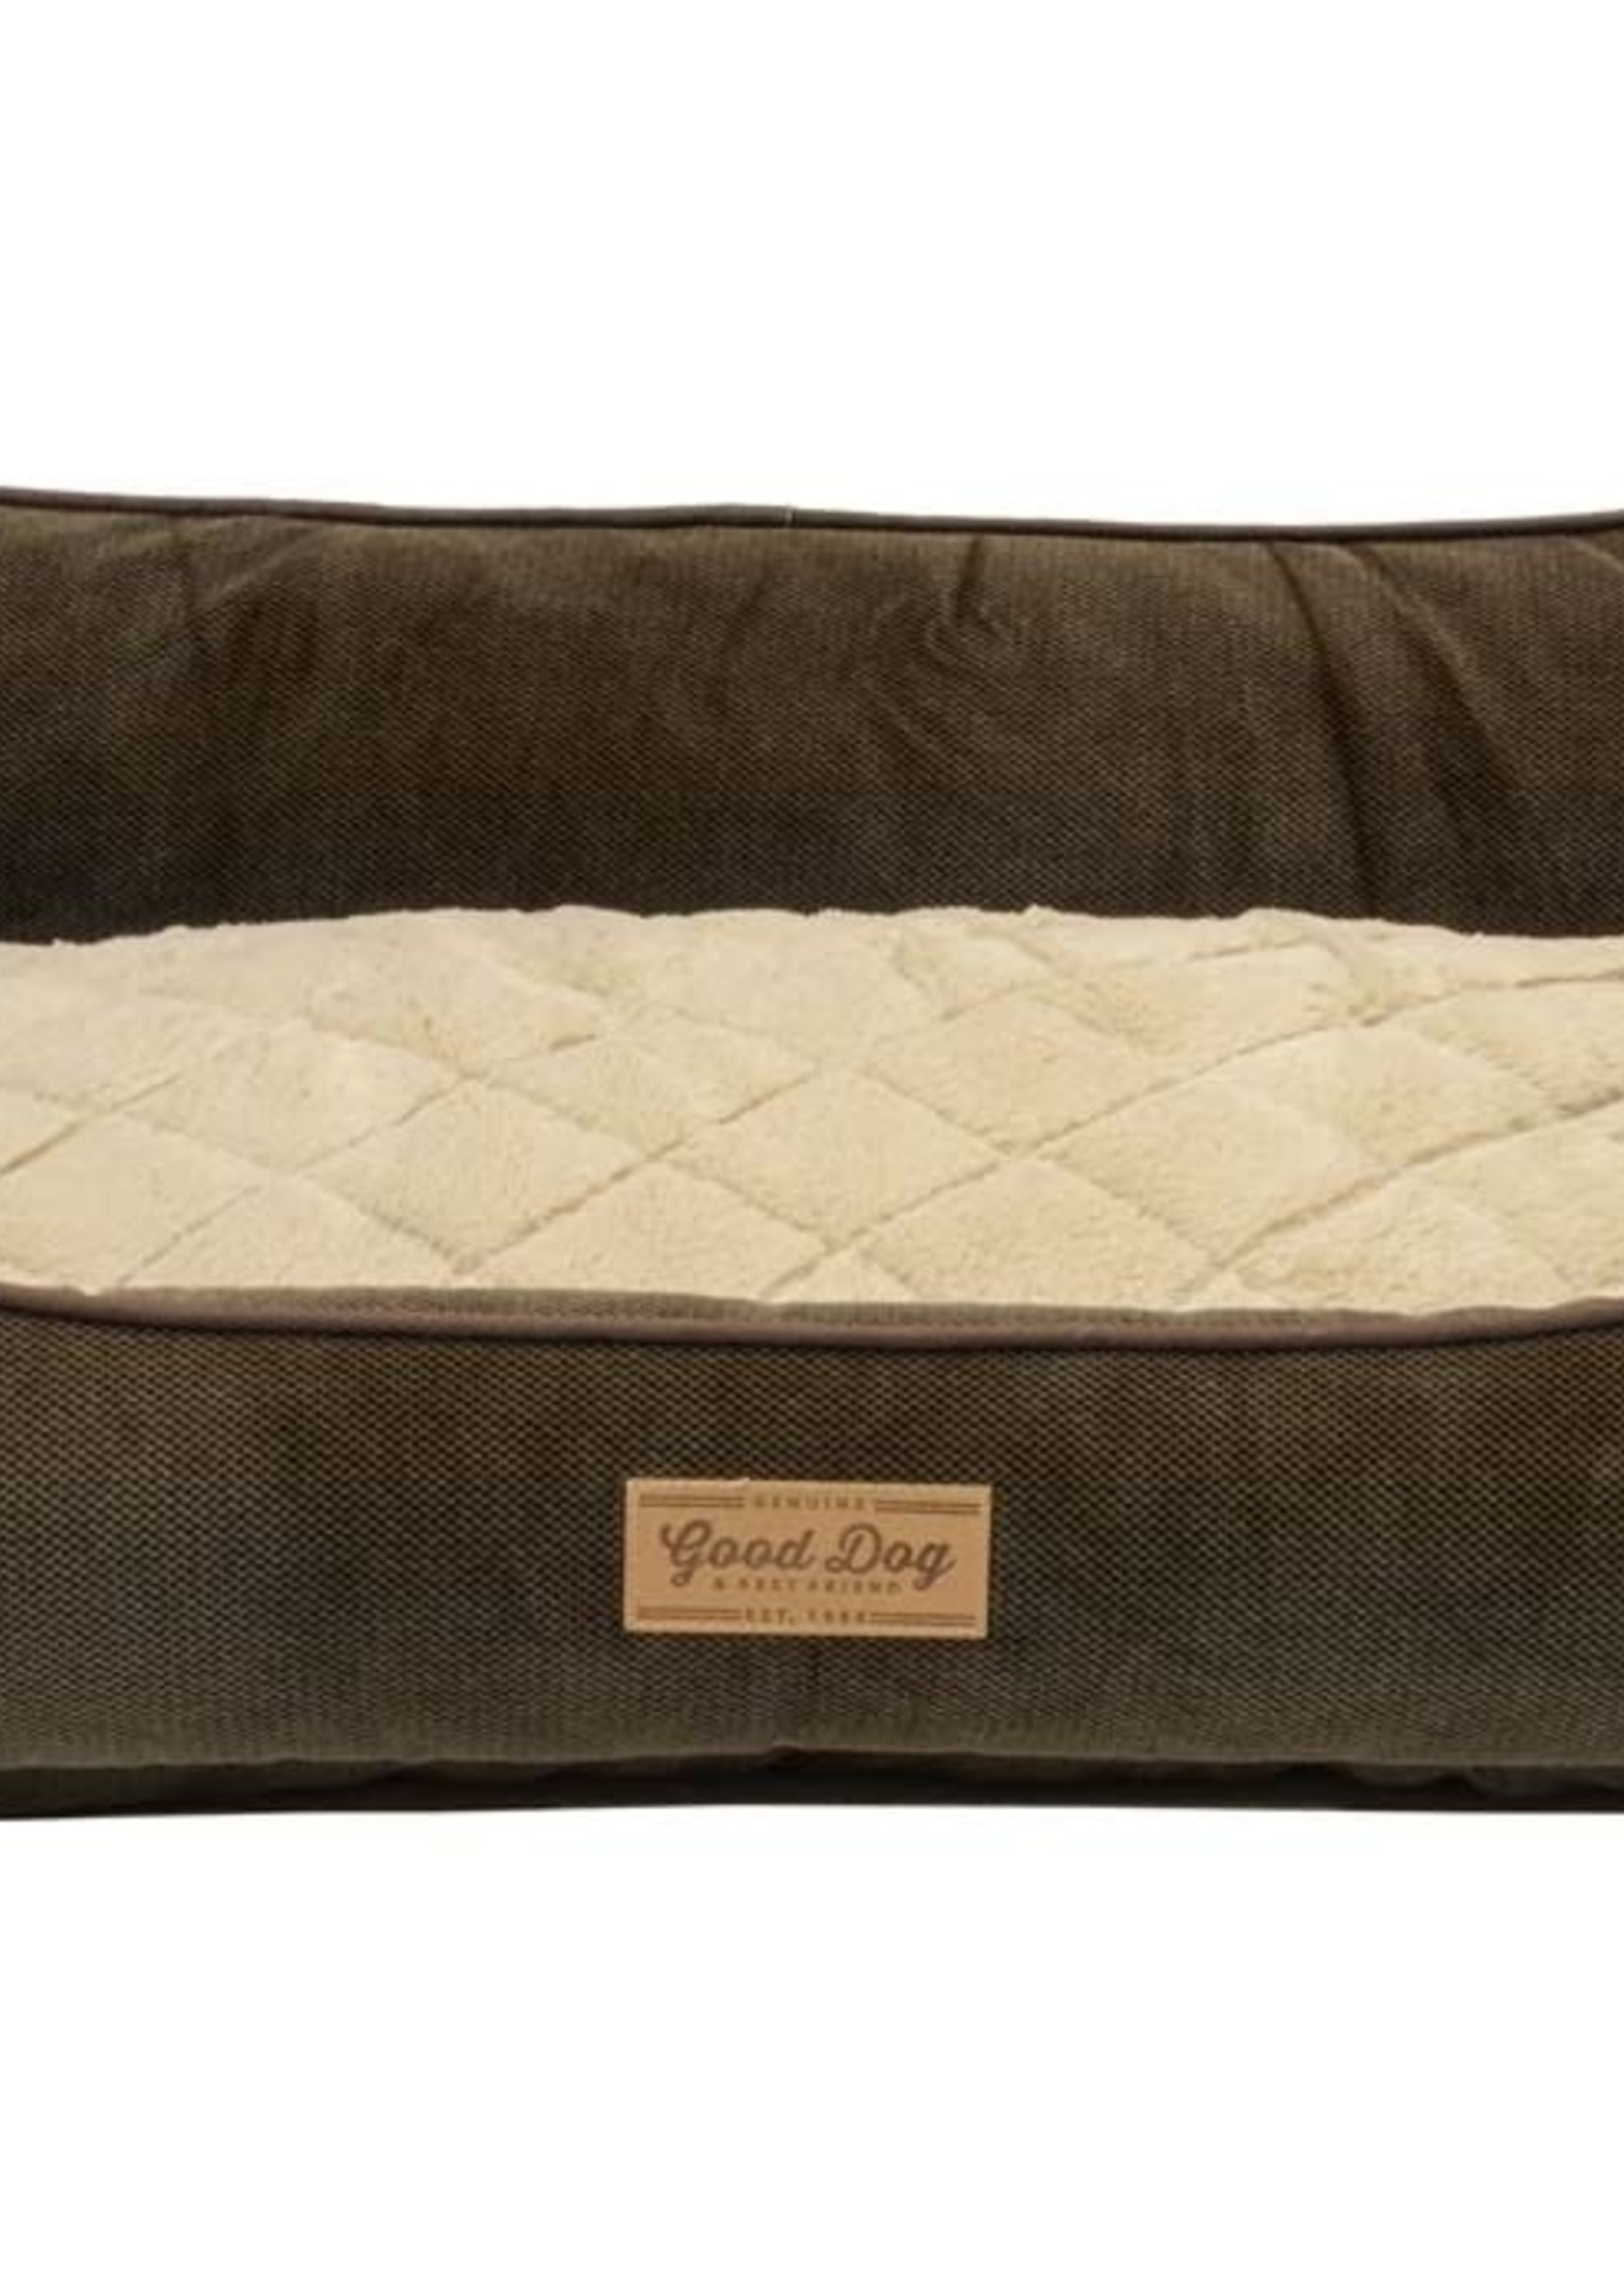 CENTRAL PET HOME ESSENTIALS DMC Dallas Manufacturing Textured Quilted Box Bed 40 x 30in